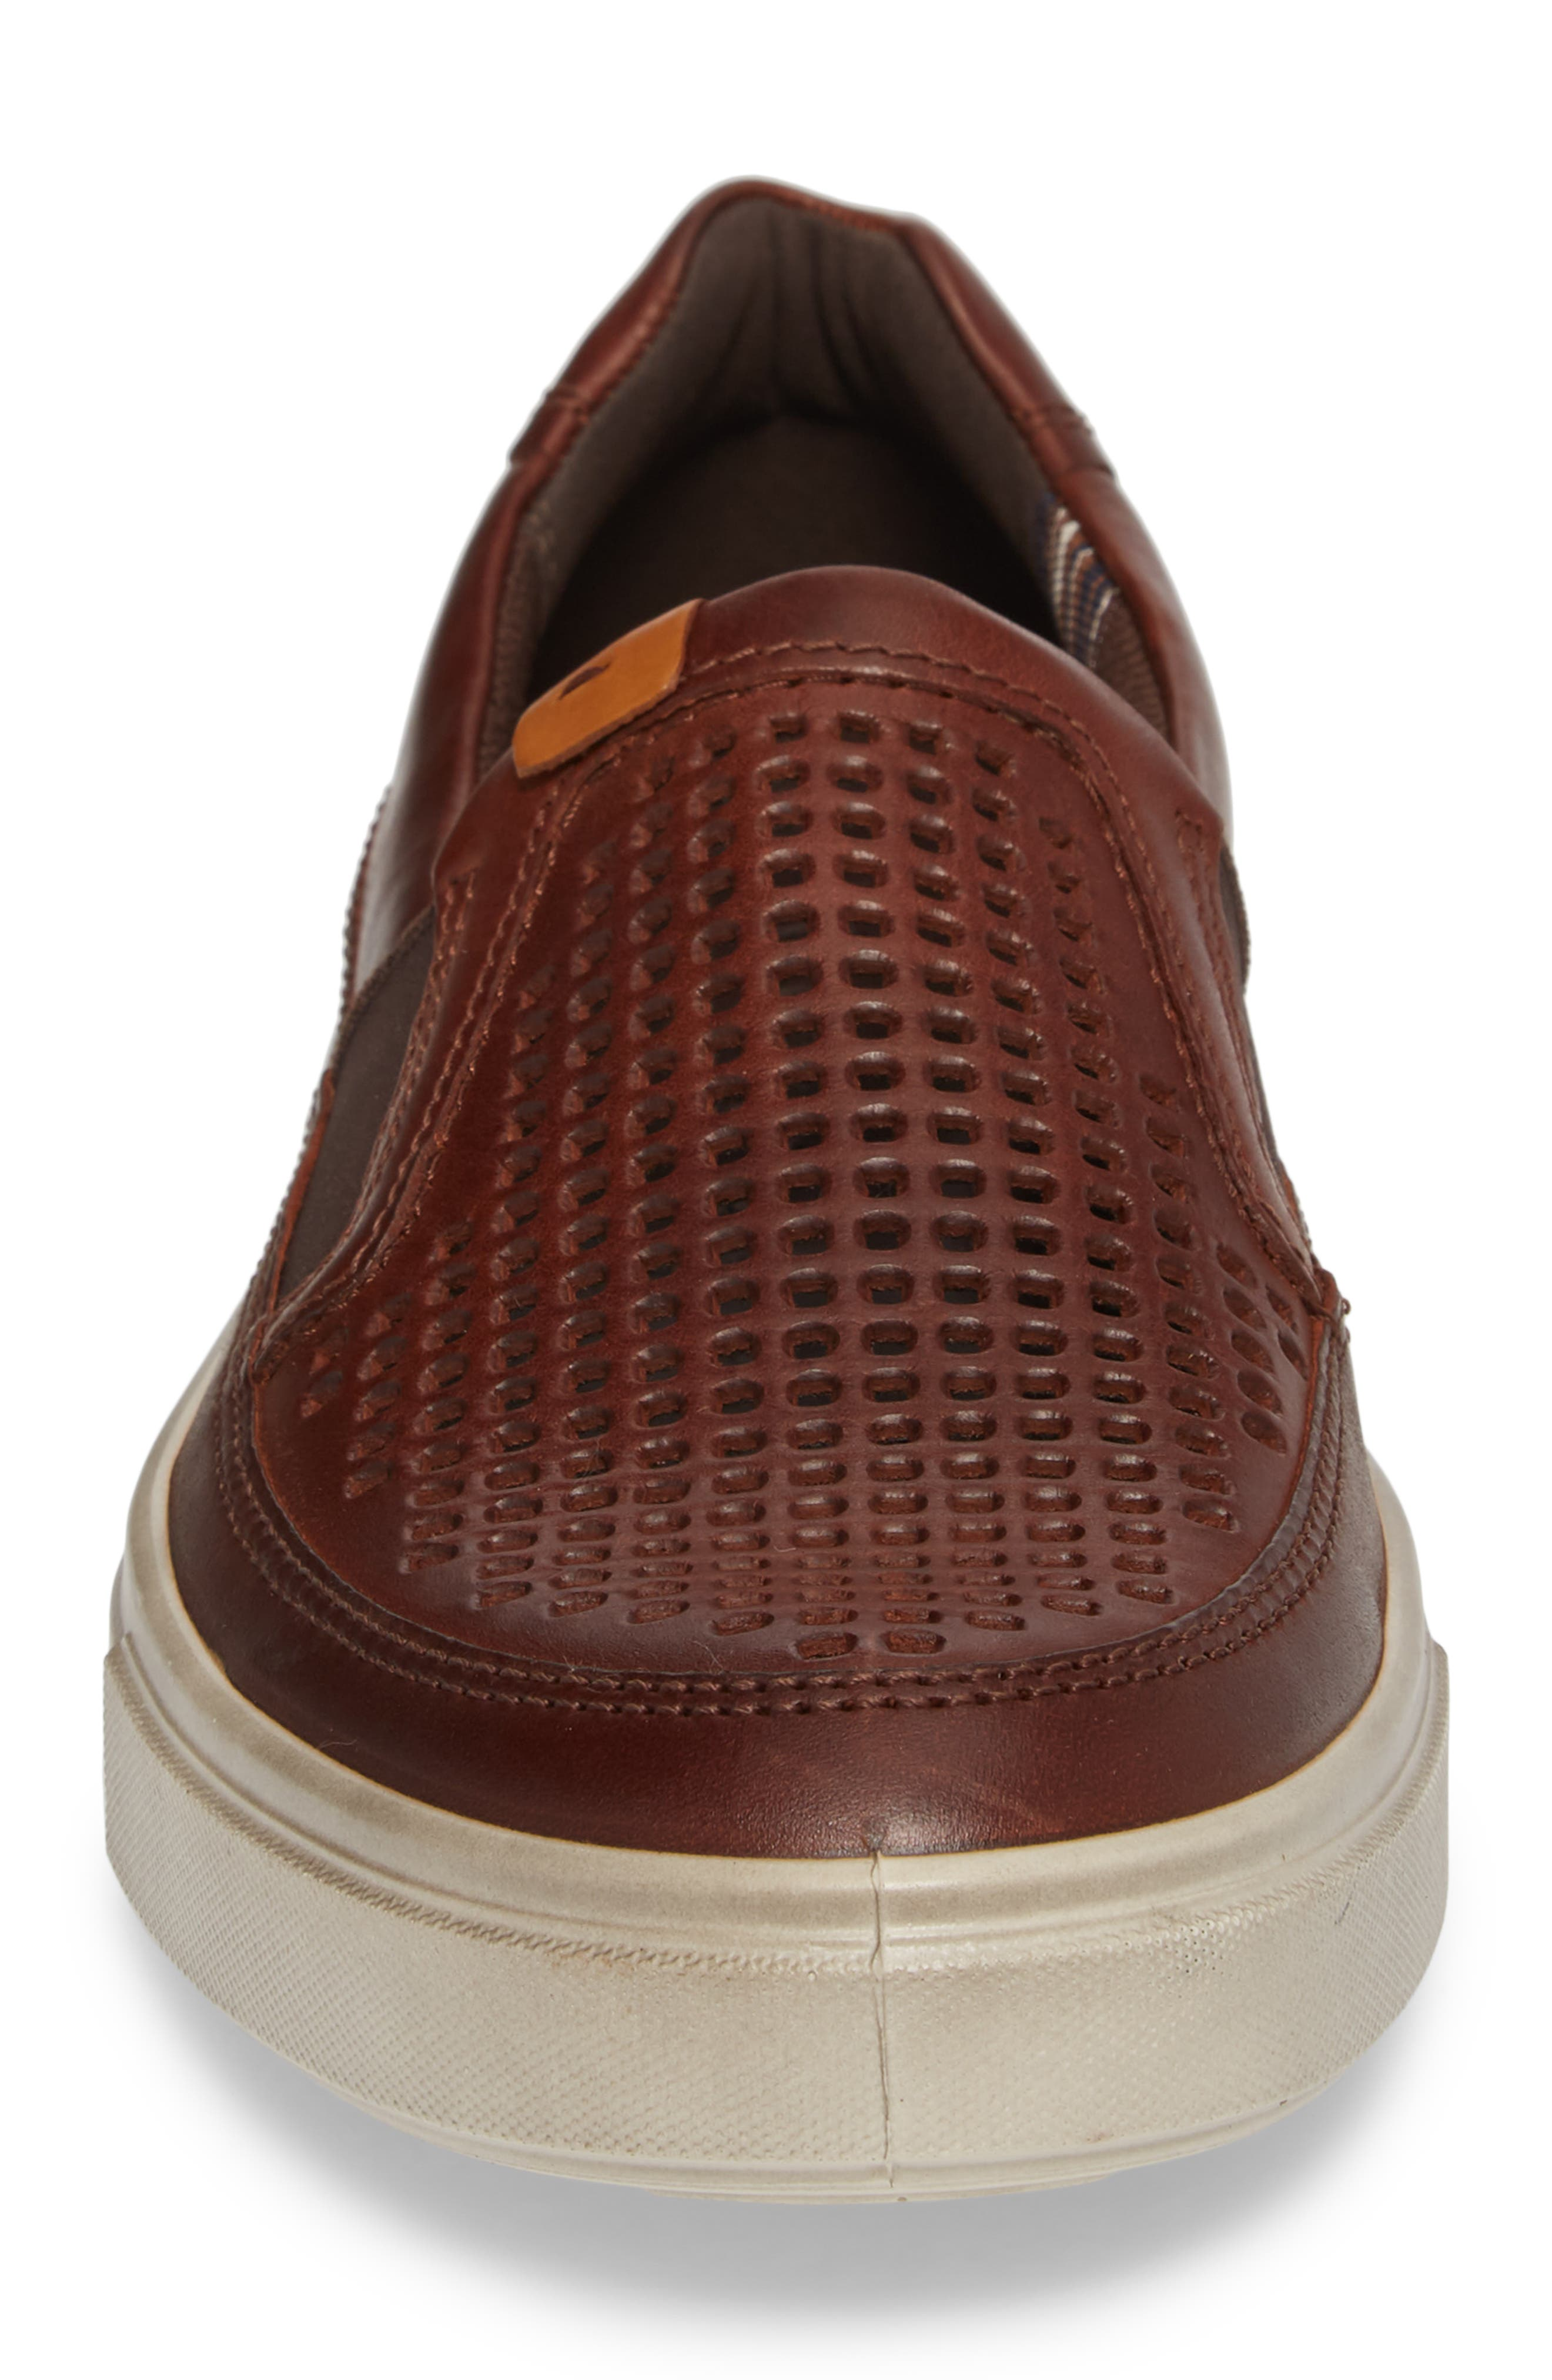 Kyle Perforated Slip-On Sneaker,                             Alternate thumbnail 4, color,                             Cognac Leather